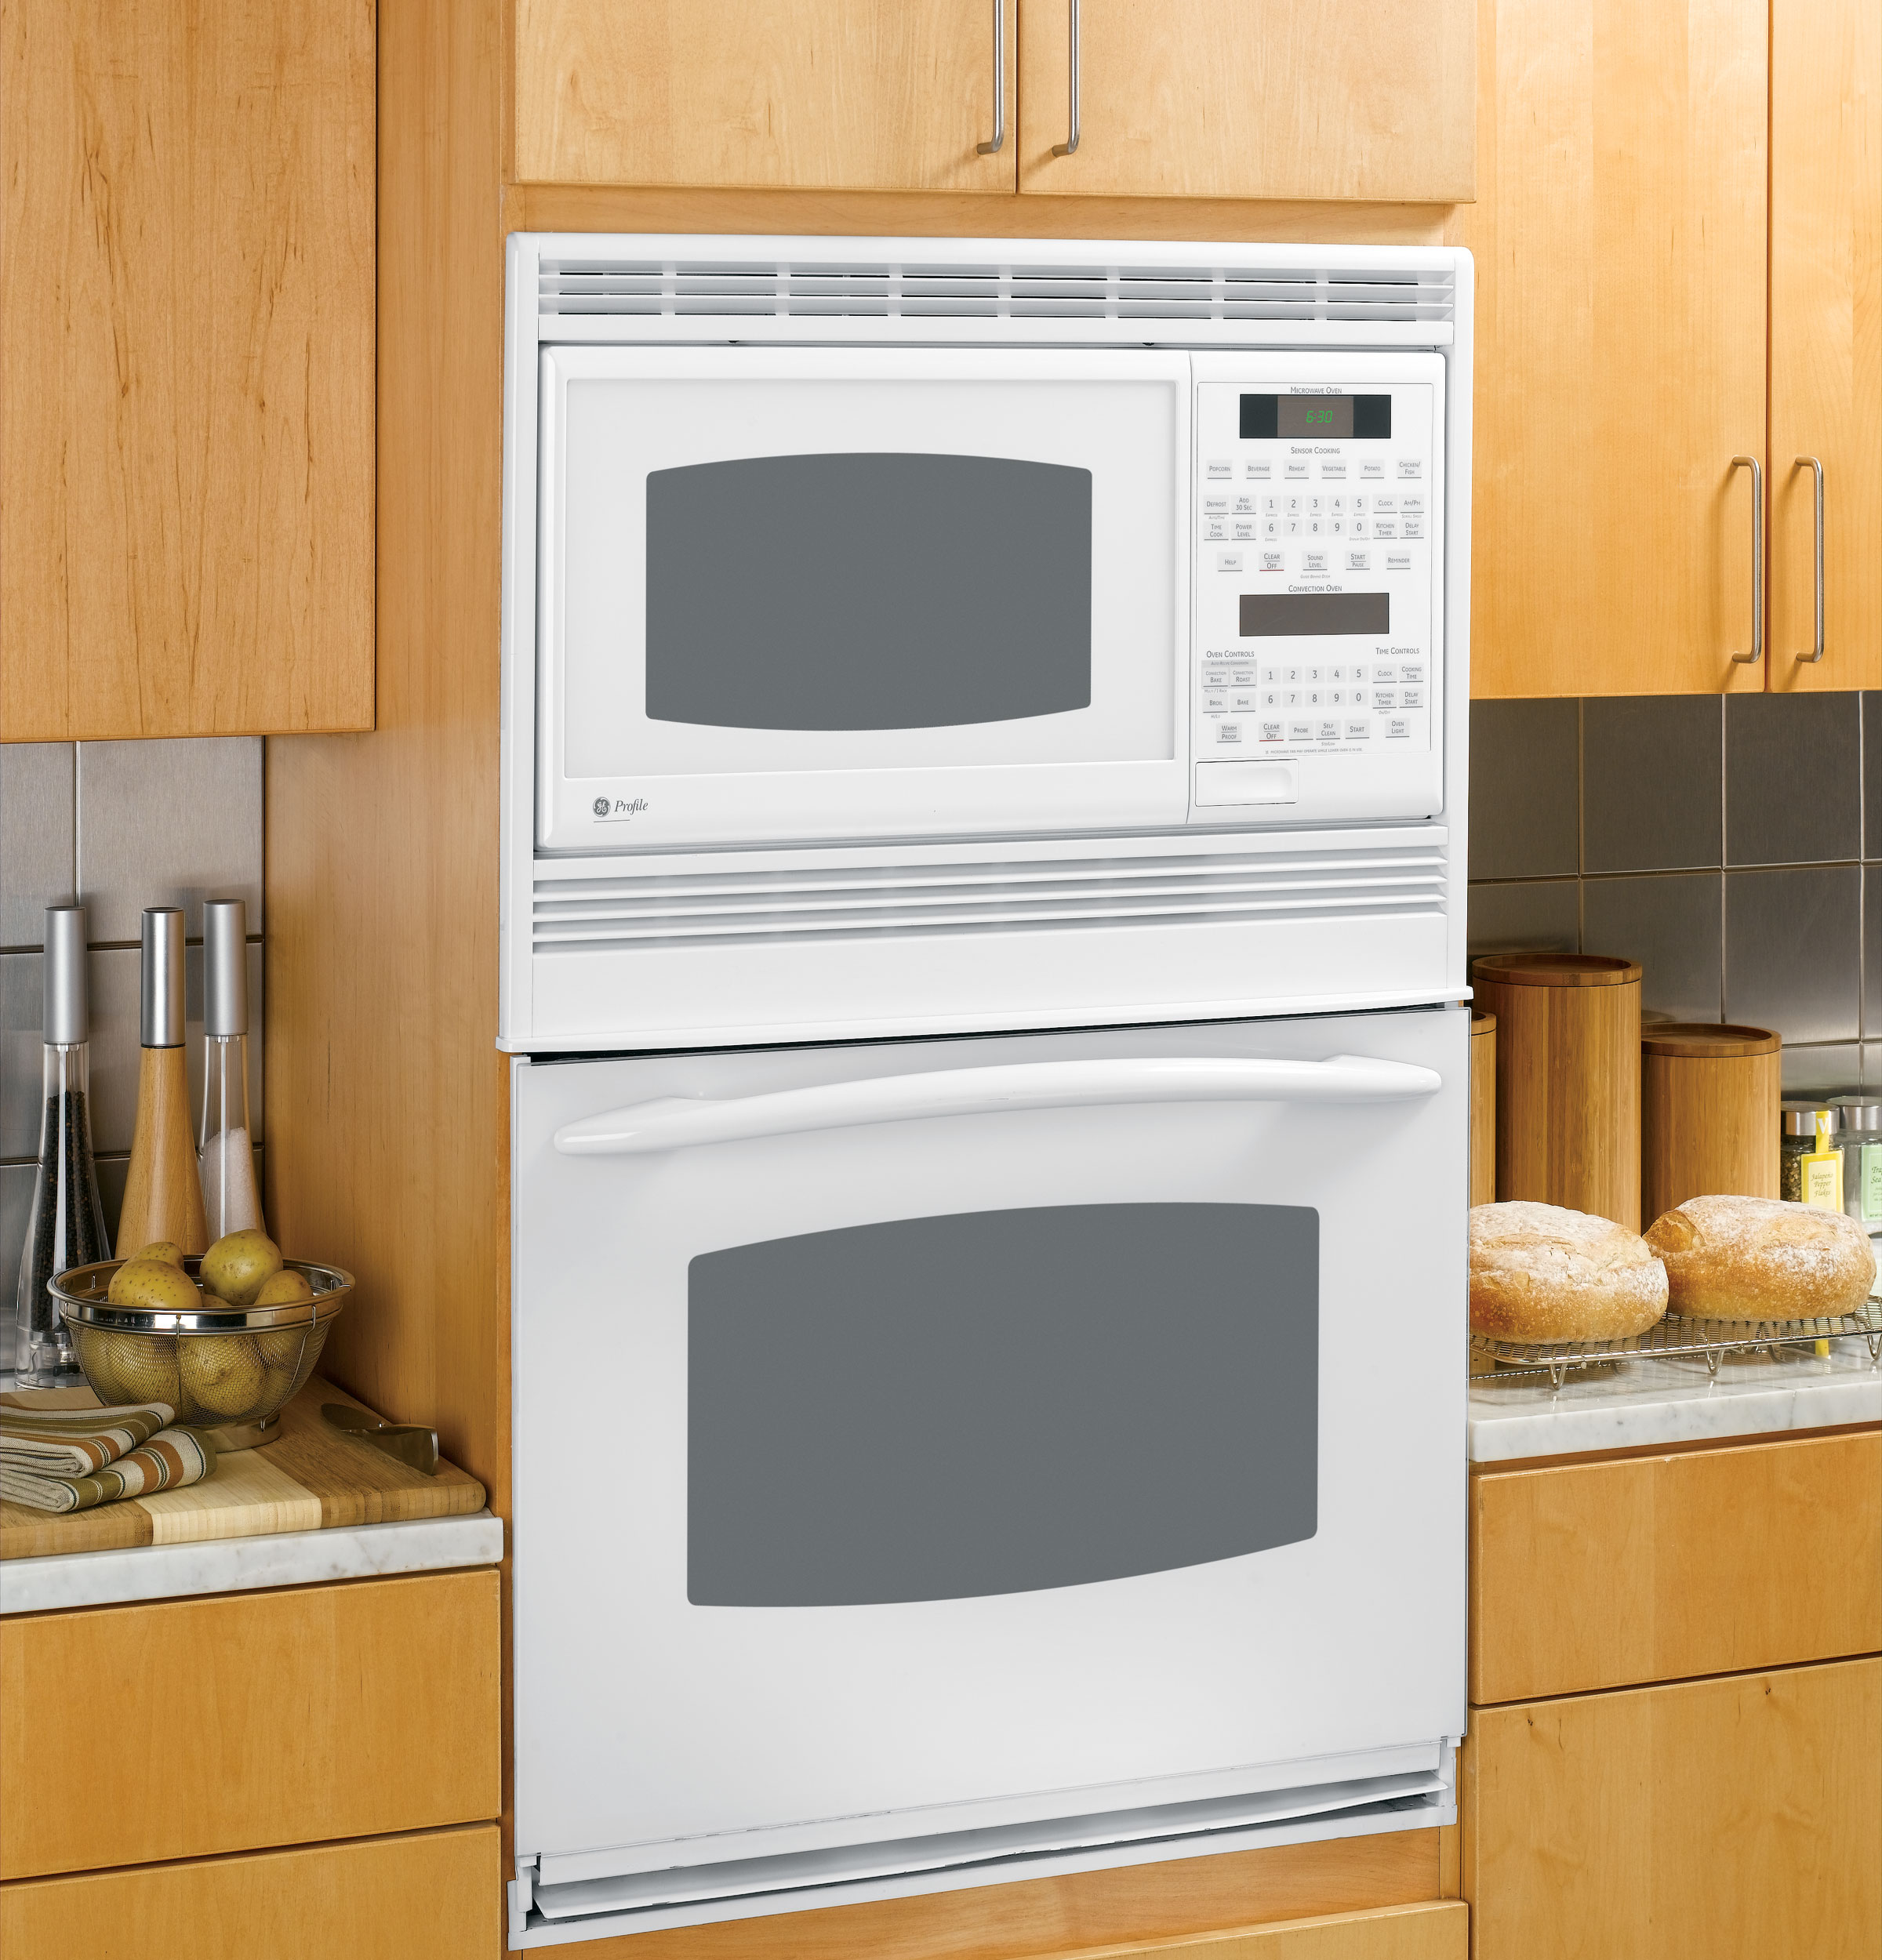 Sheffield microwave convection oven manual